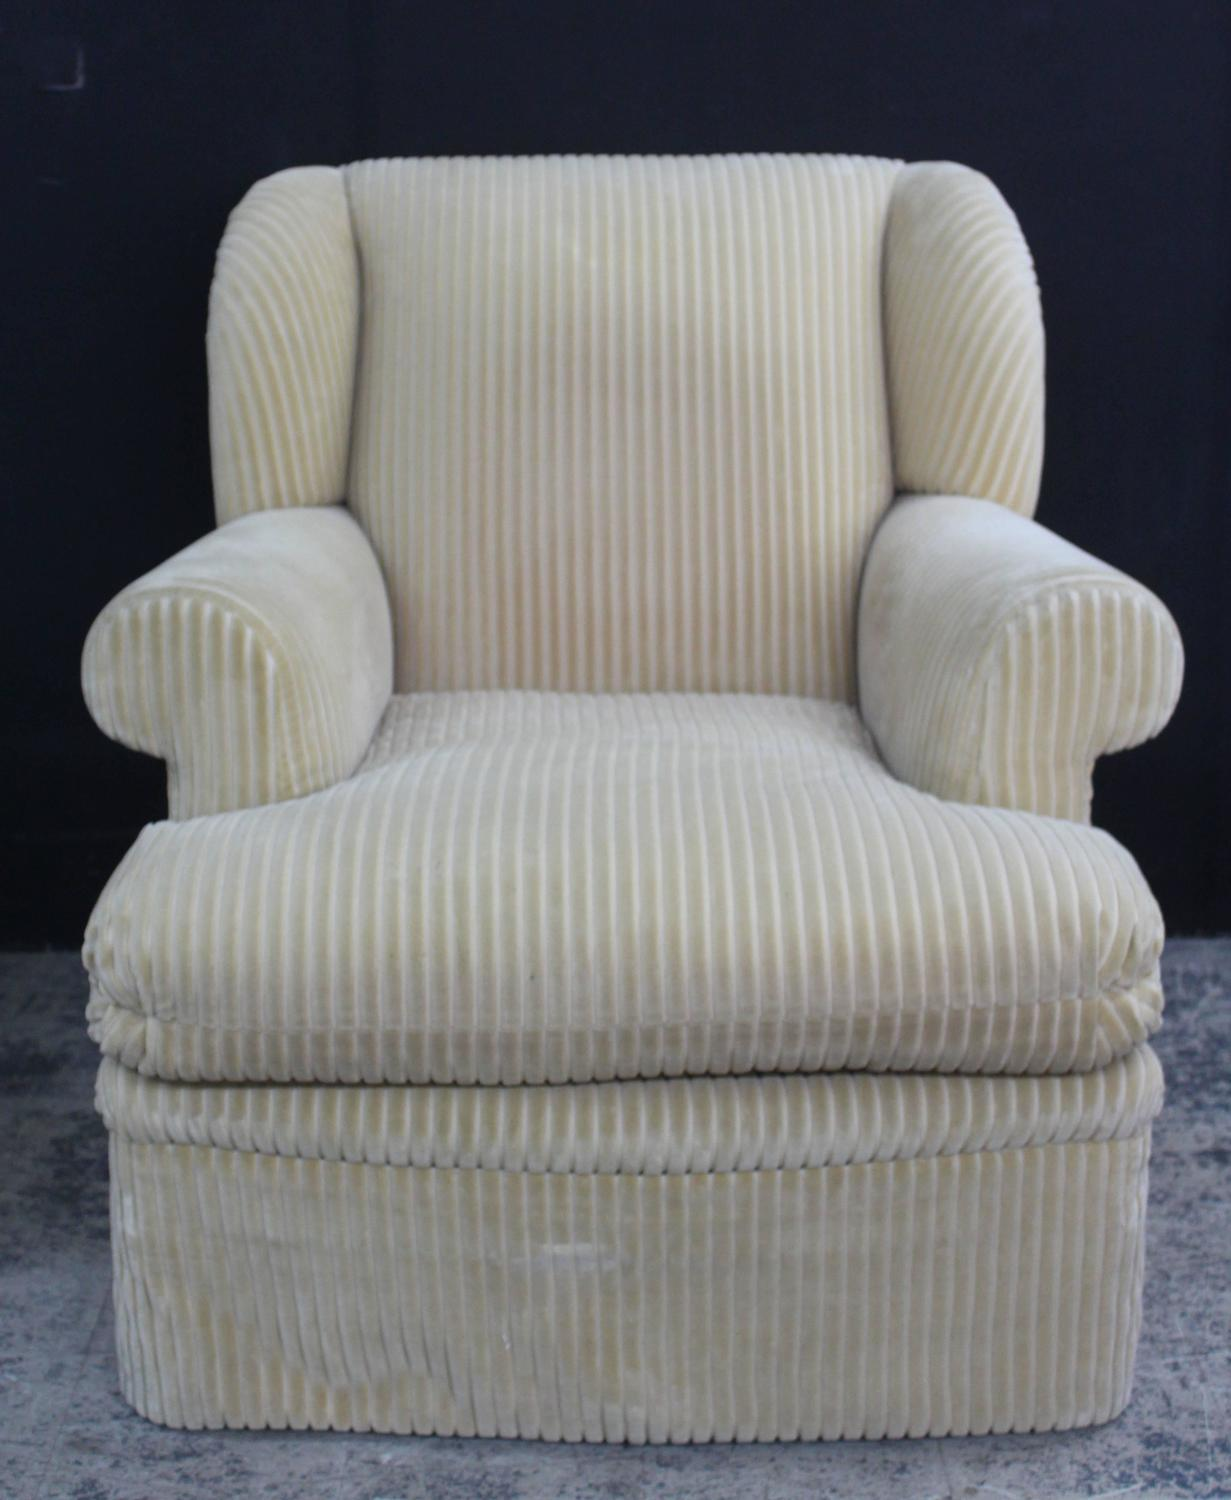 Big Comfortable Chairs Large And Comfortable Club Chair And Matching Ottoman For